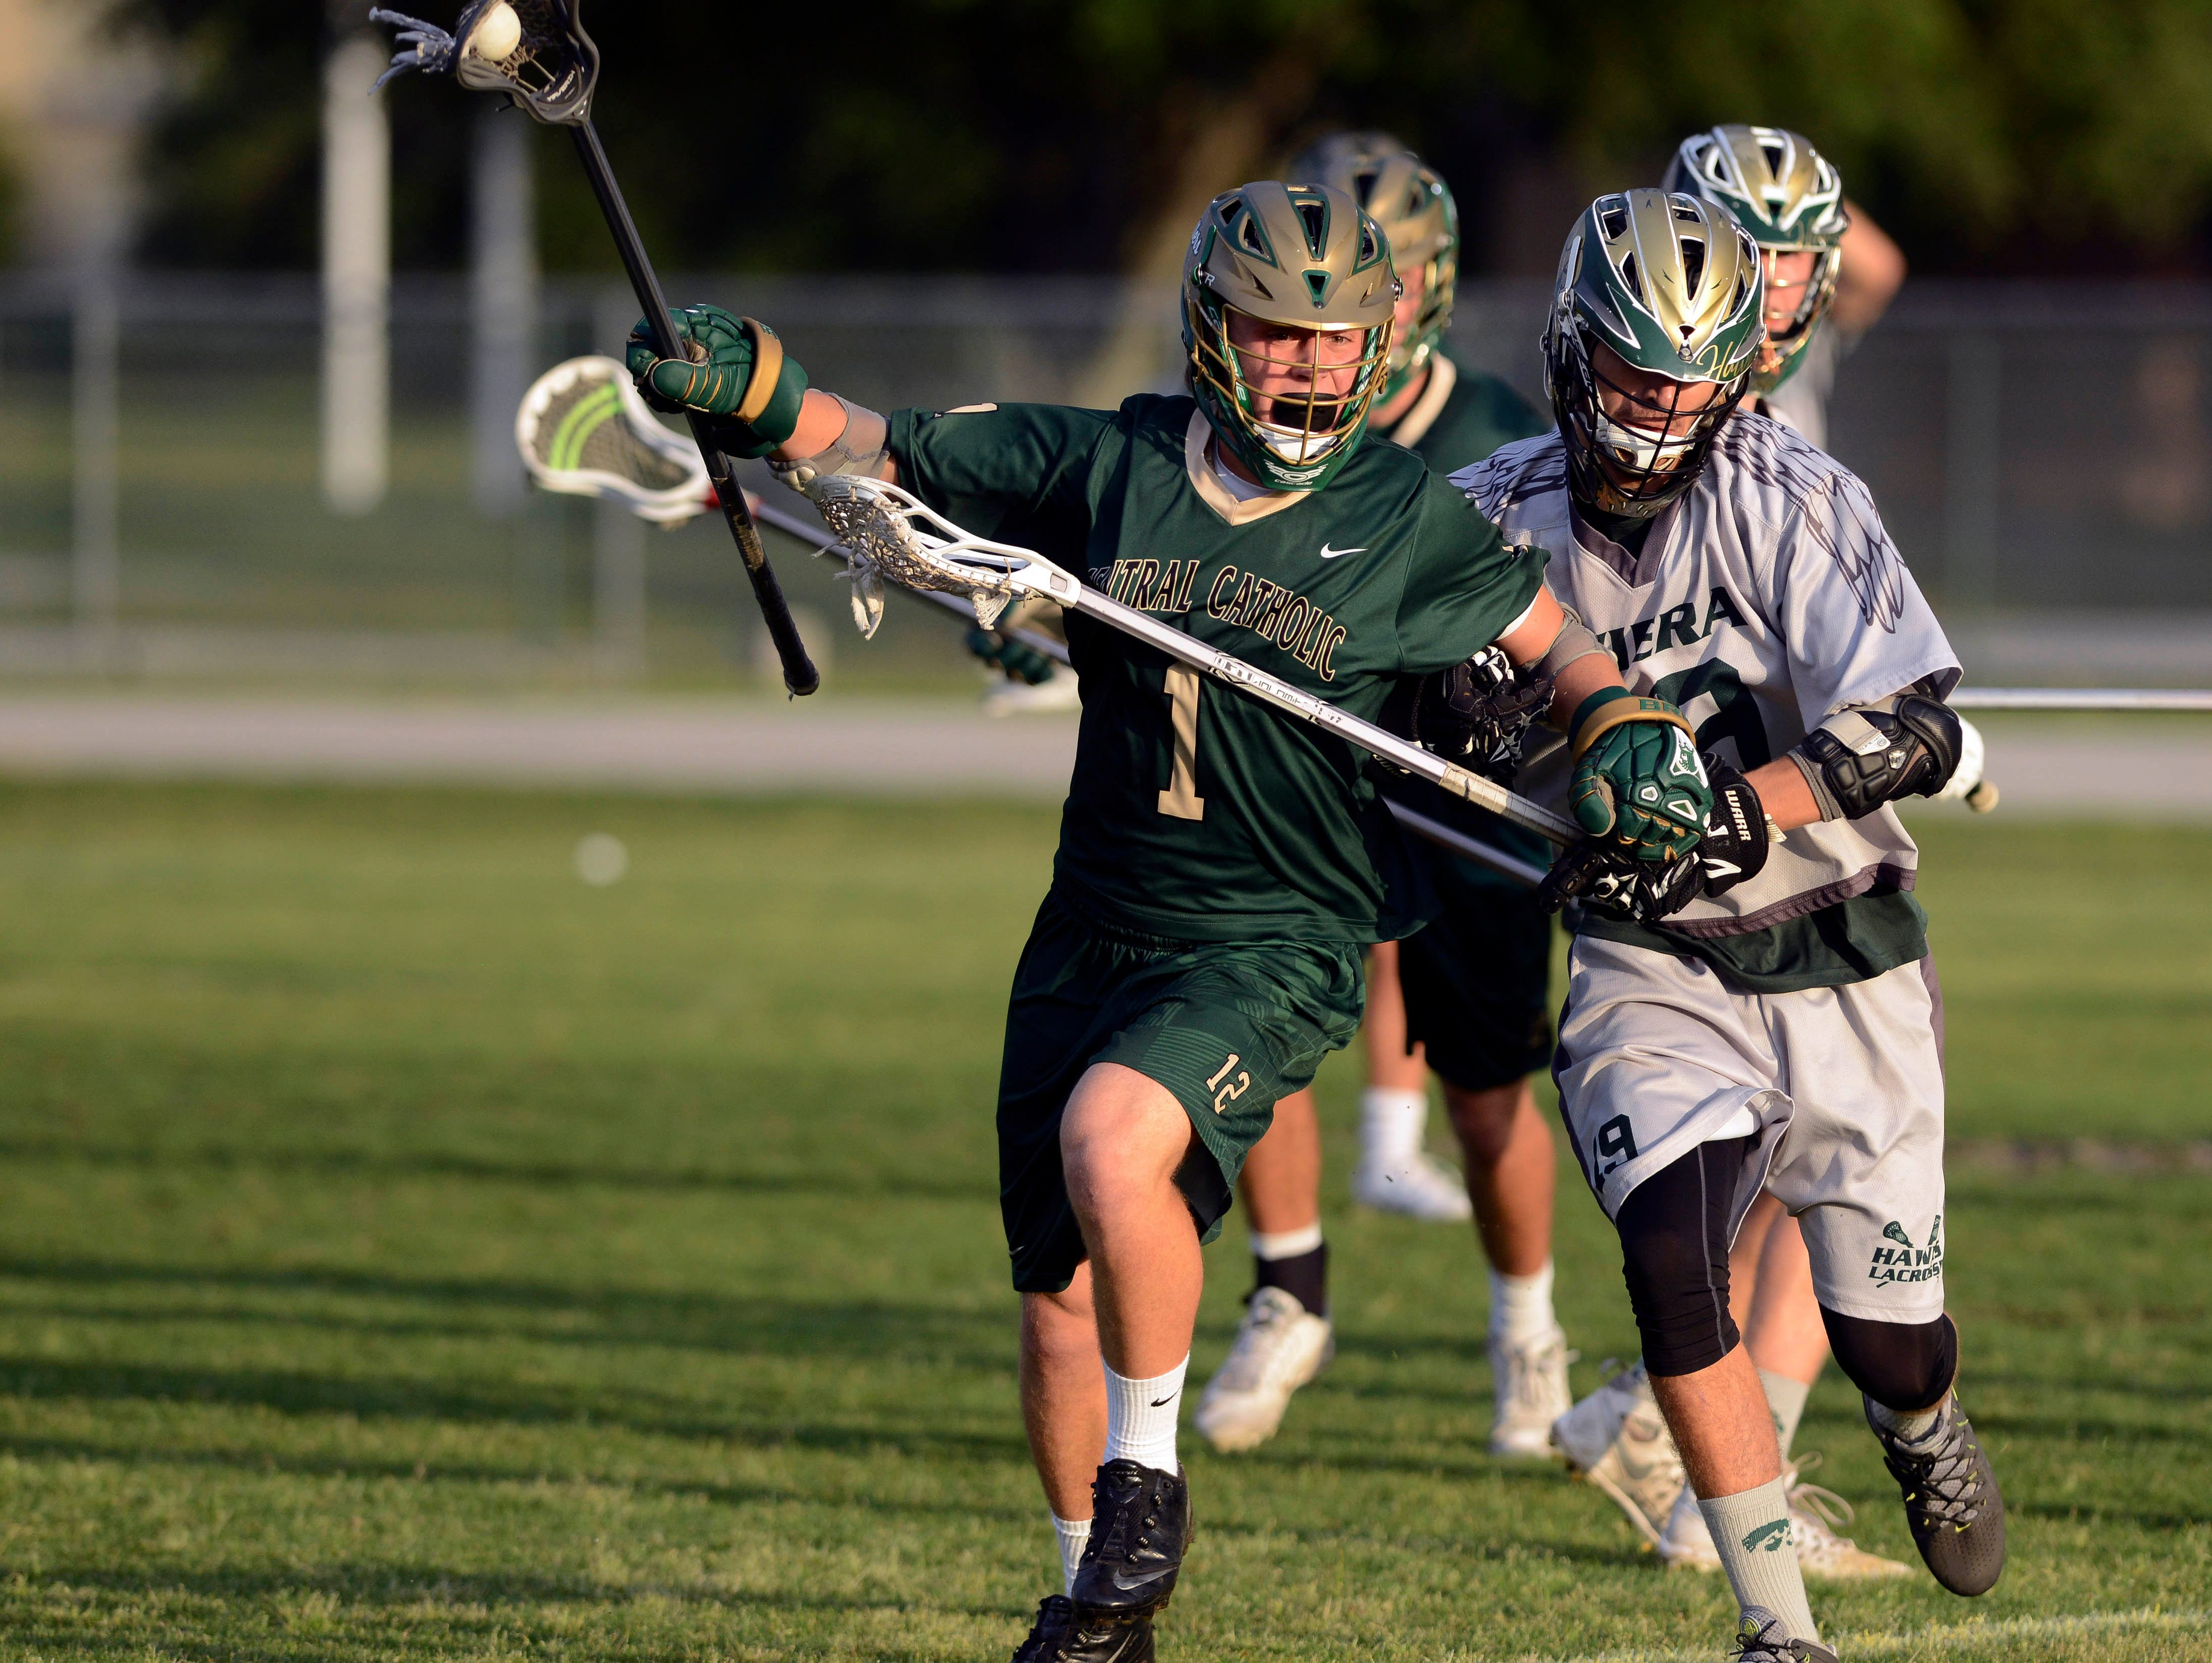 Viera's Griffni Syverson (19) tries to dislodge the ball from Bryce Fielding of MCC during Friday's playoff game in Viera.